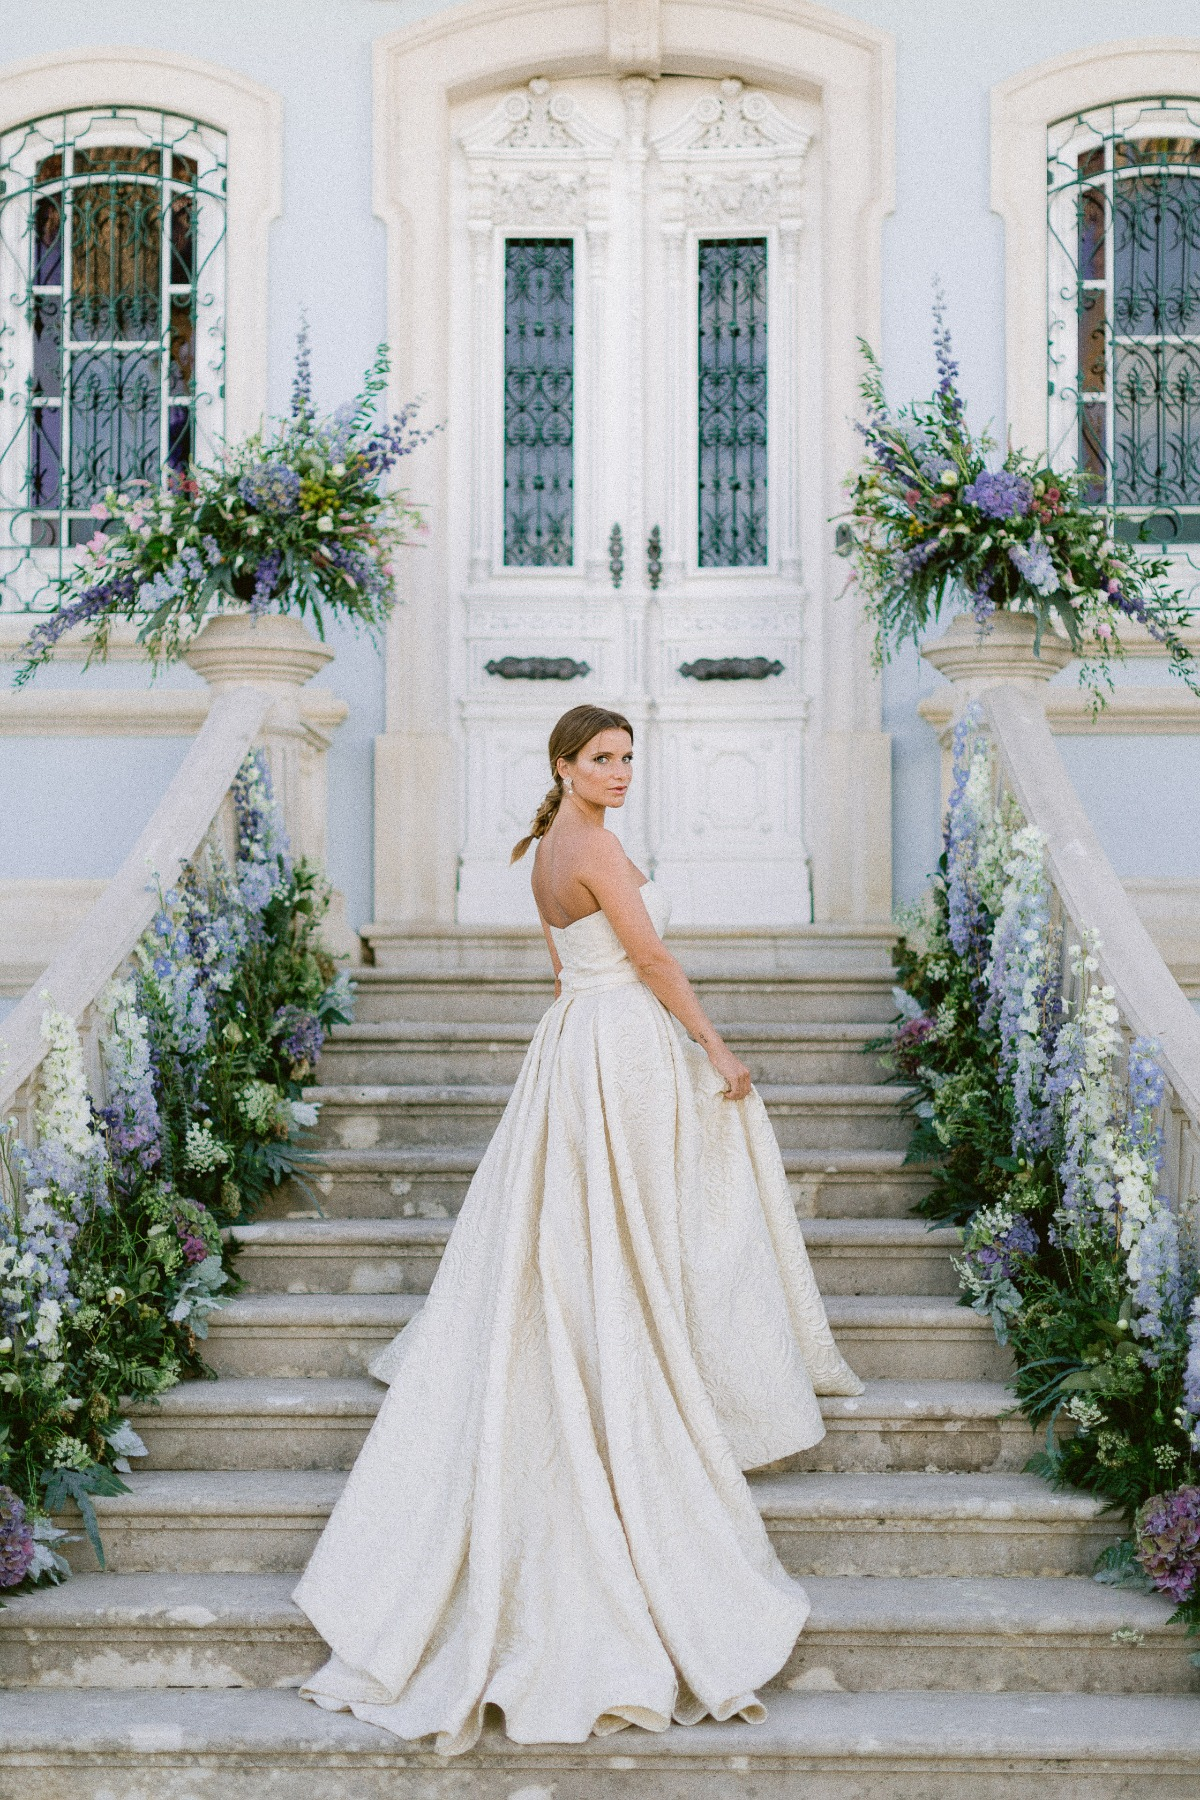 Gio Rodrigues brocade wedding gown